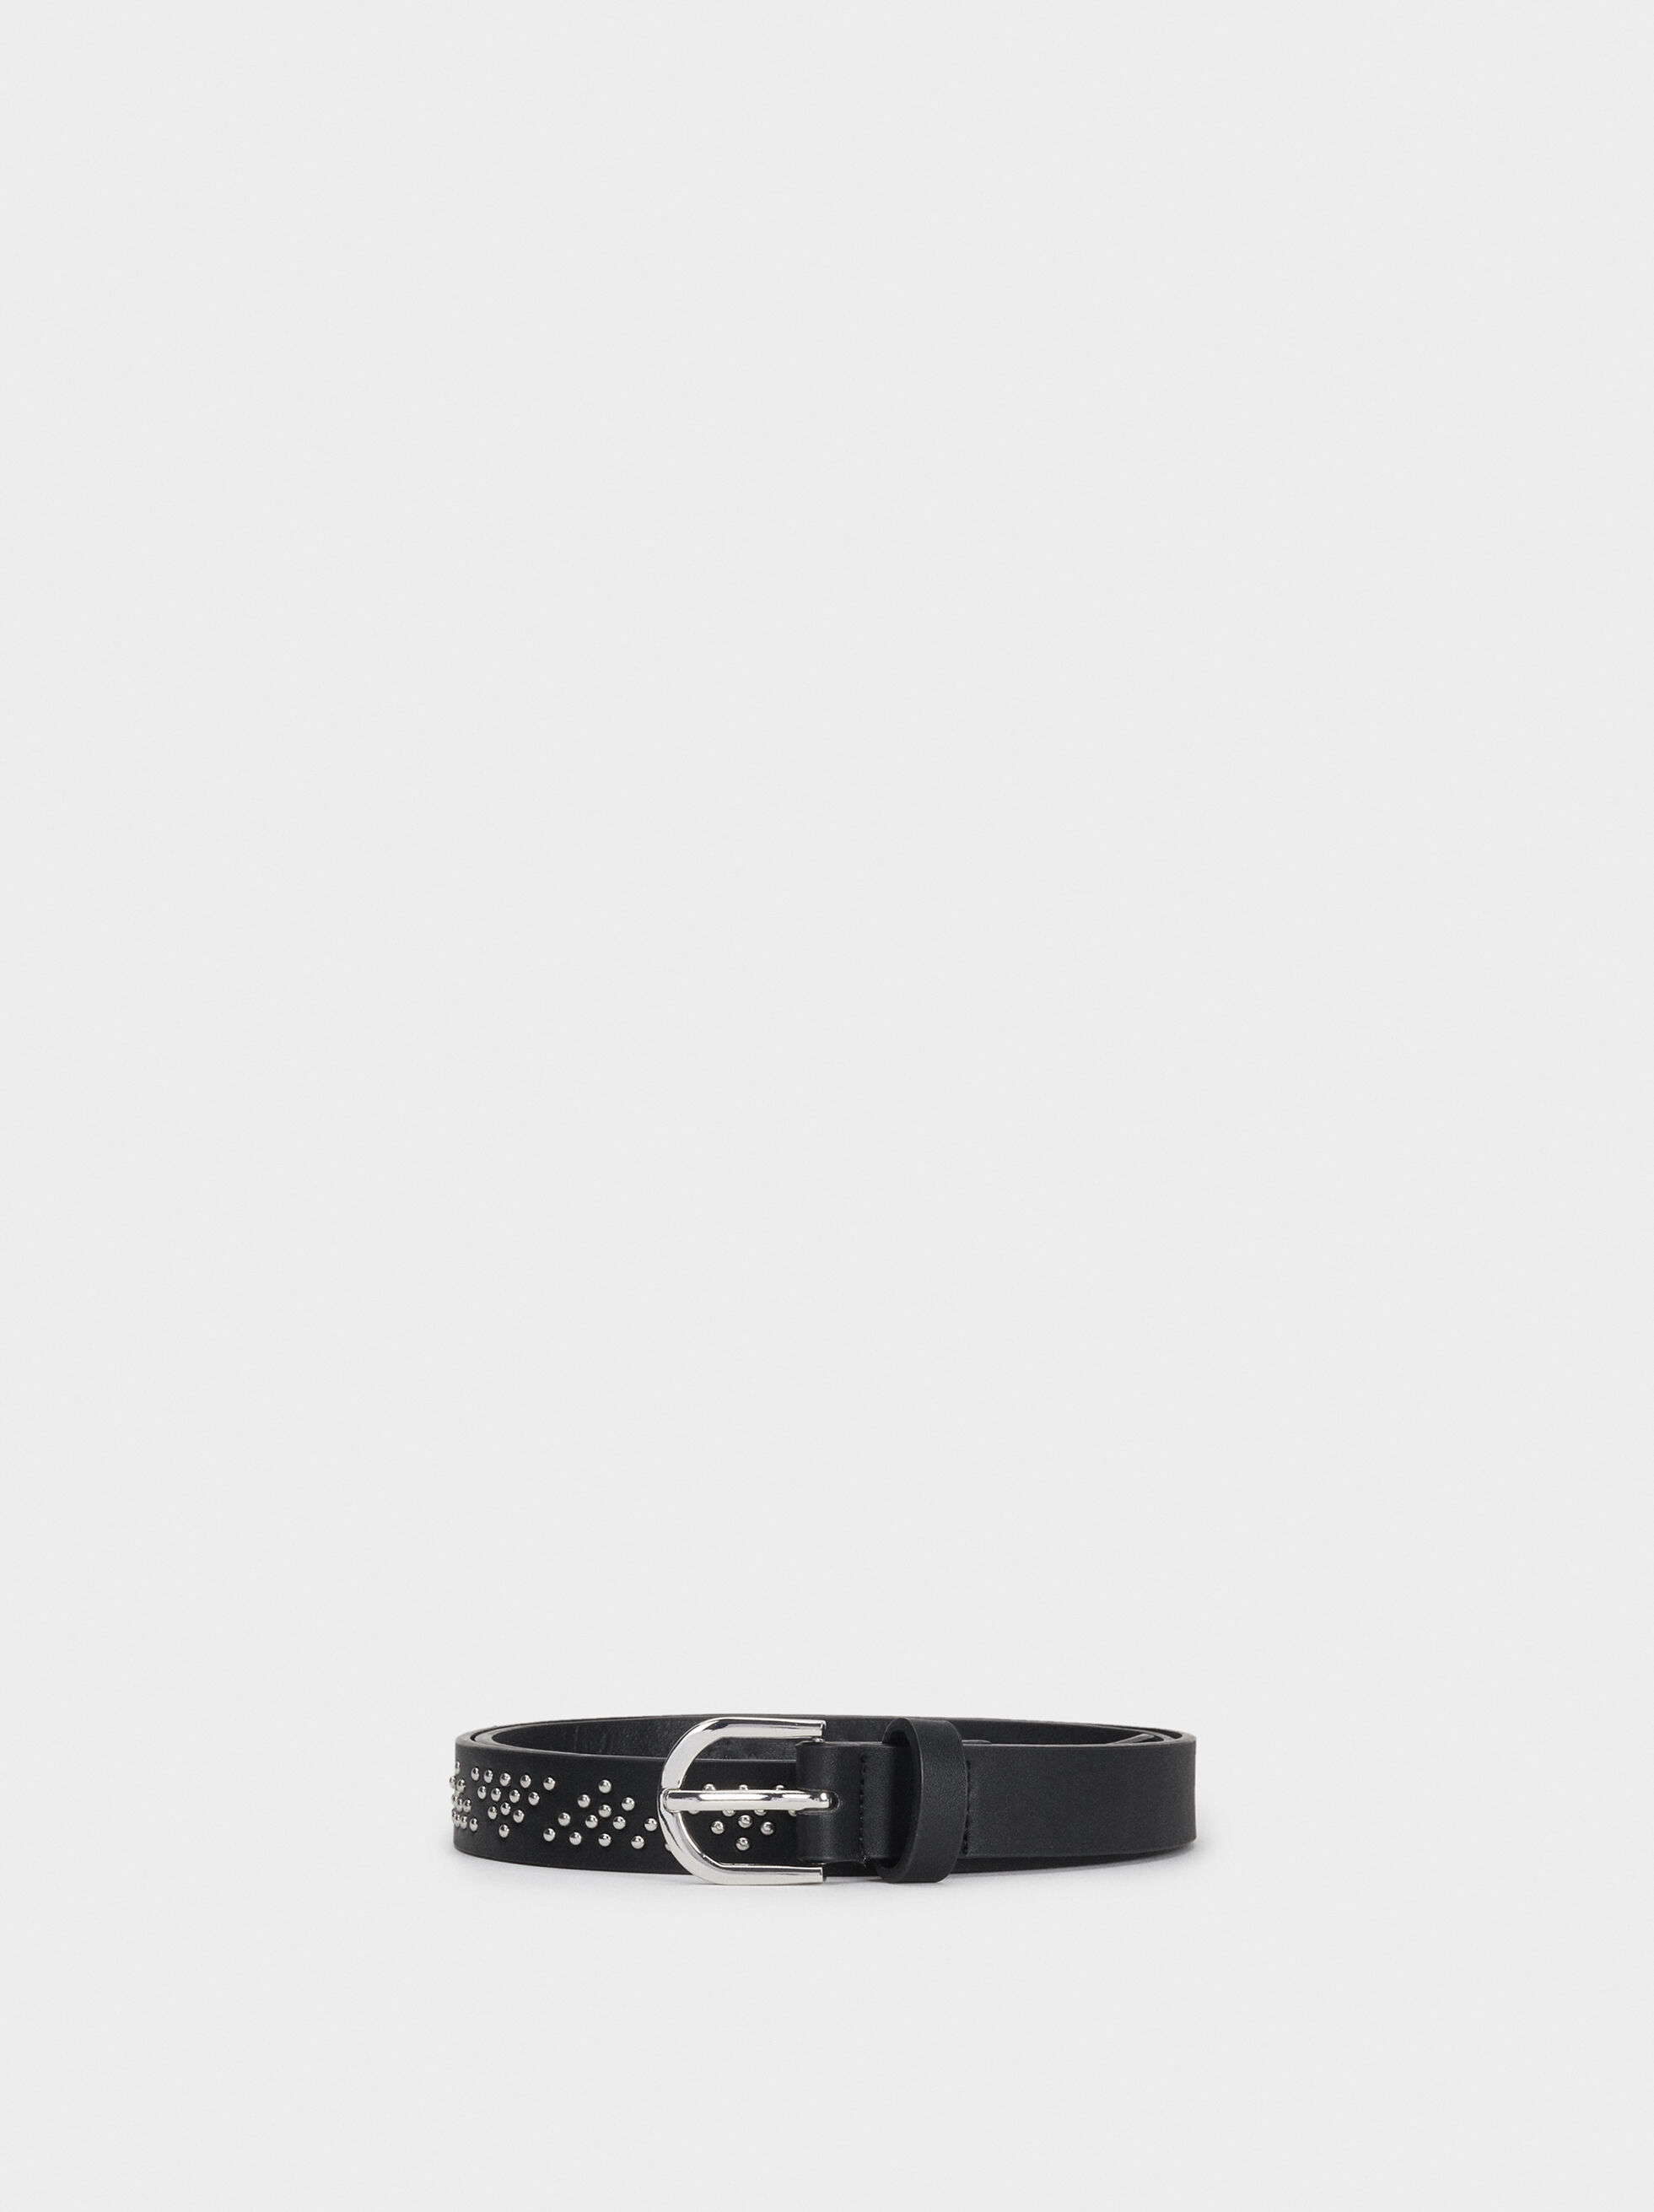 Belt With Studs, Black, hi-res